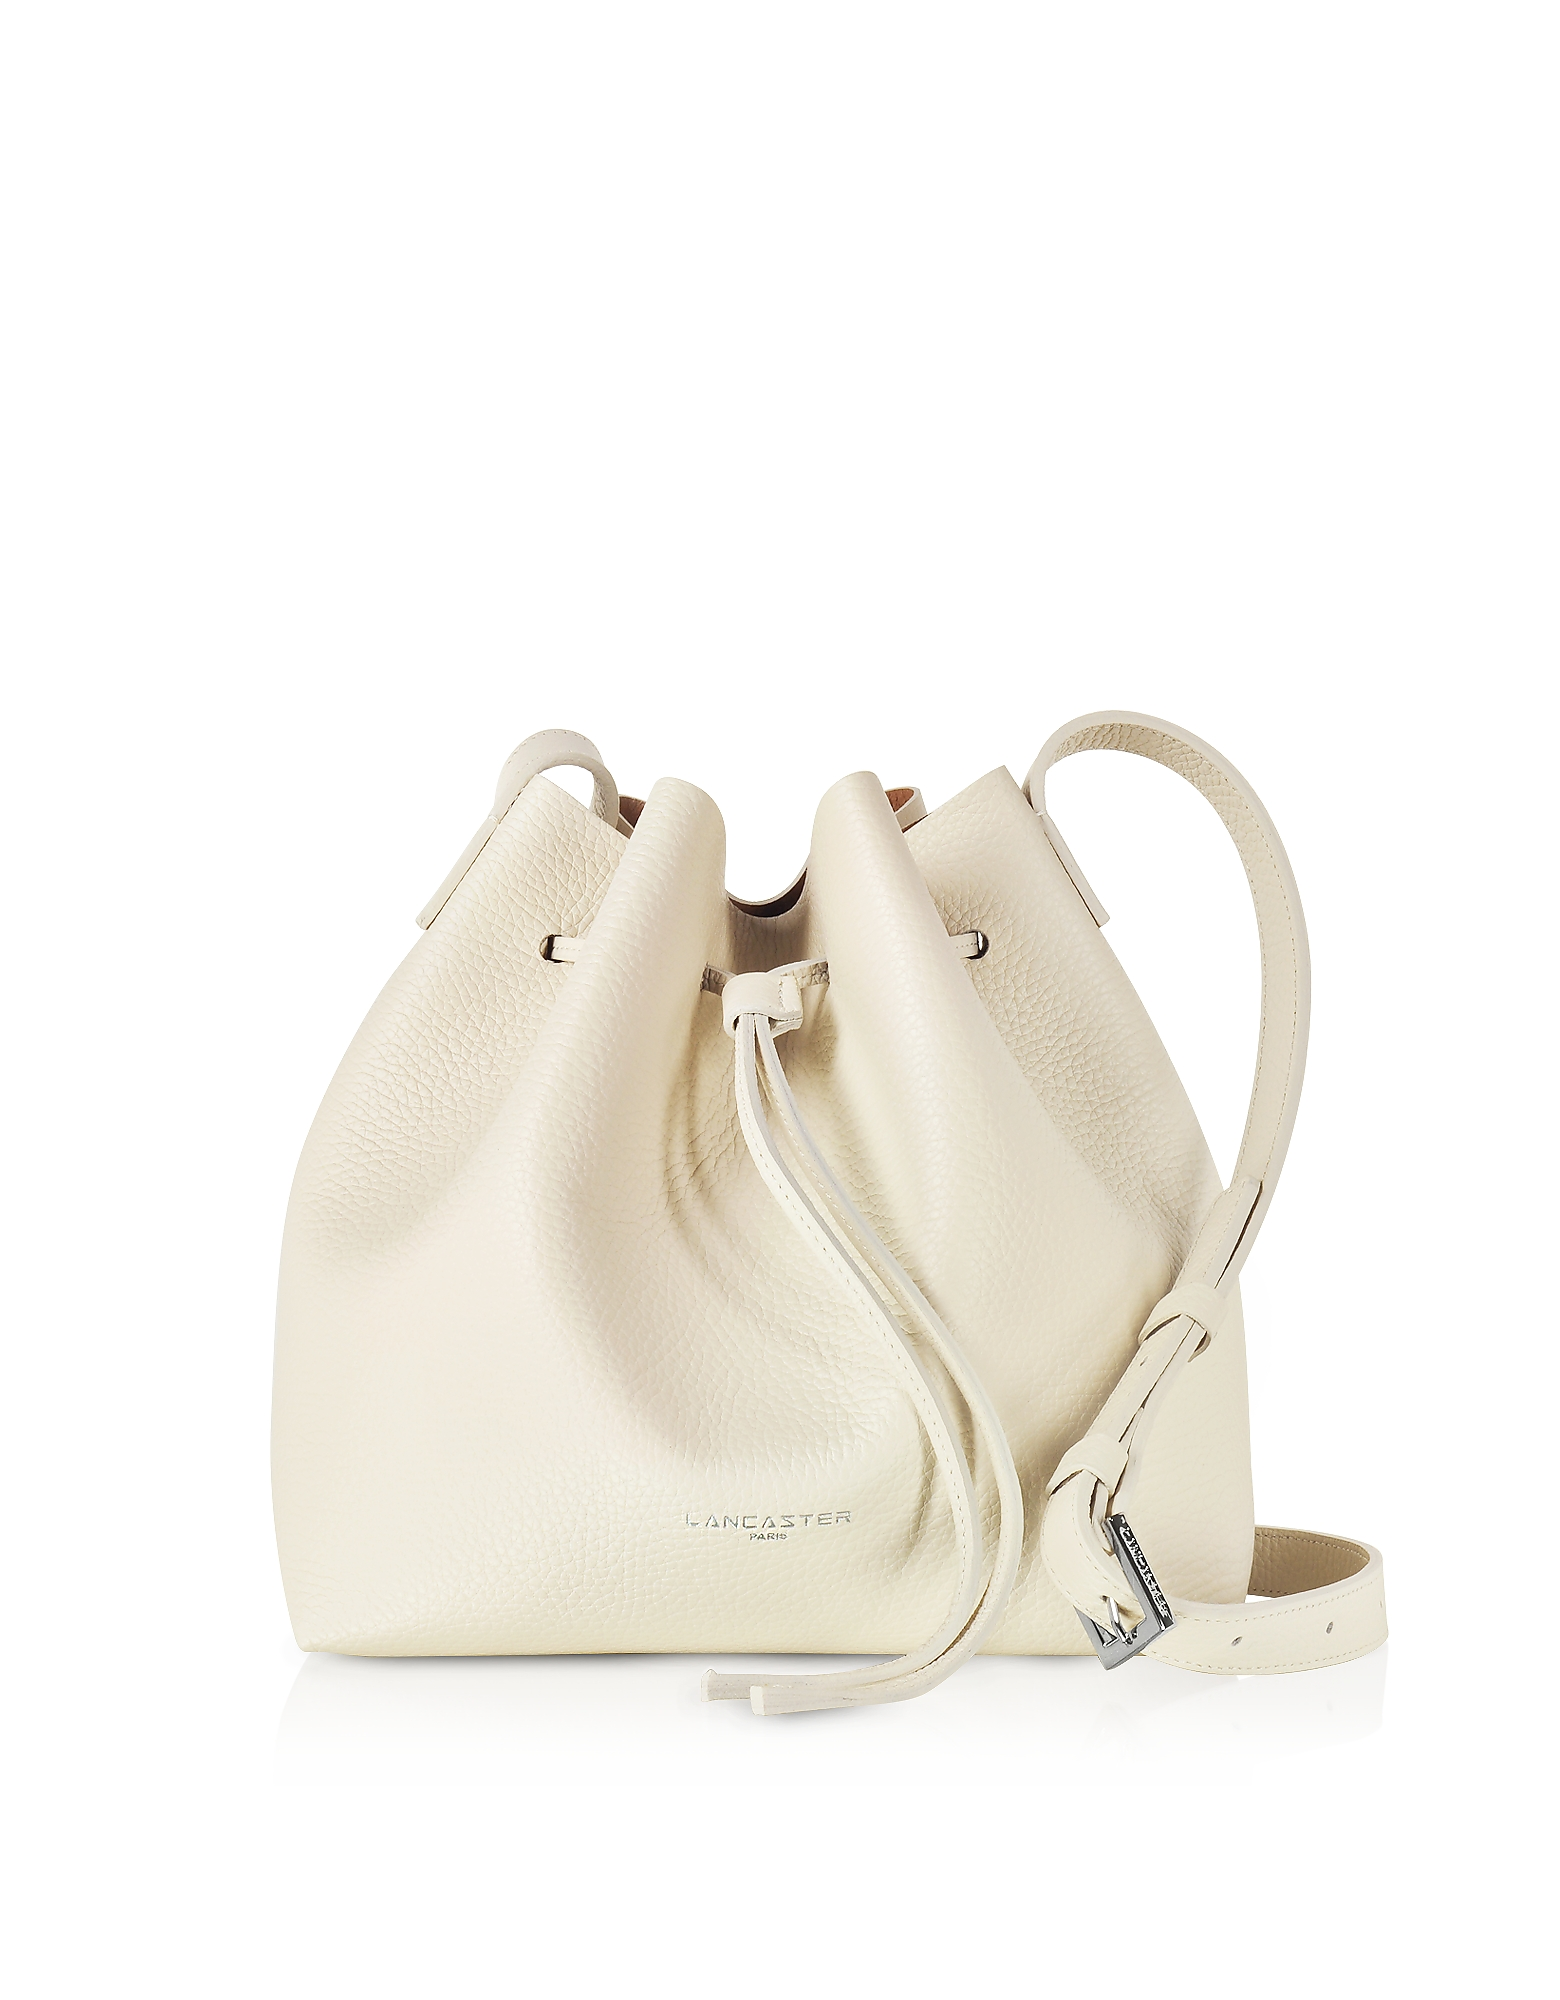 Lancaster Paris Handbags, Beige Grainy Leather Bucket Bag